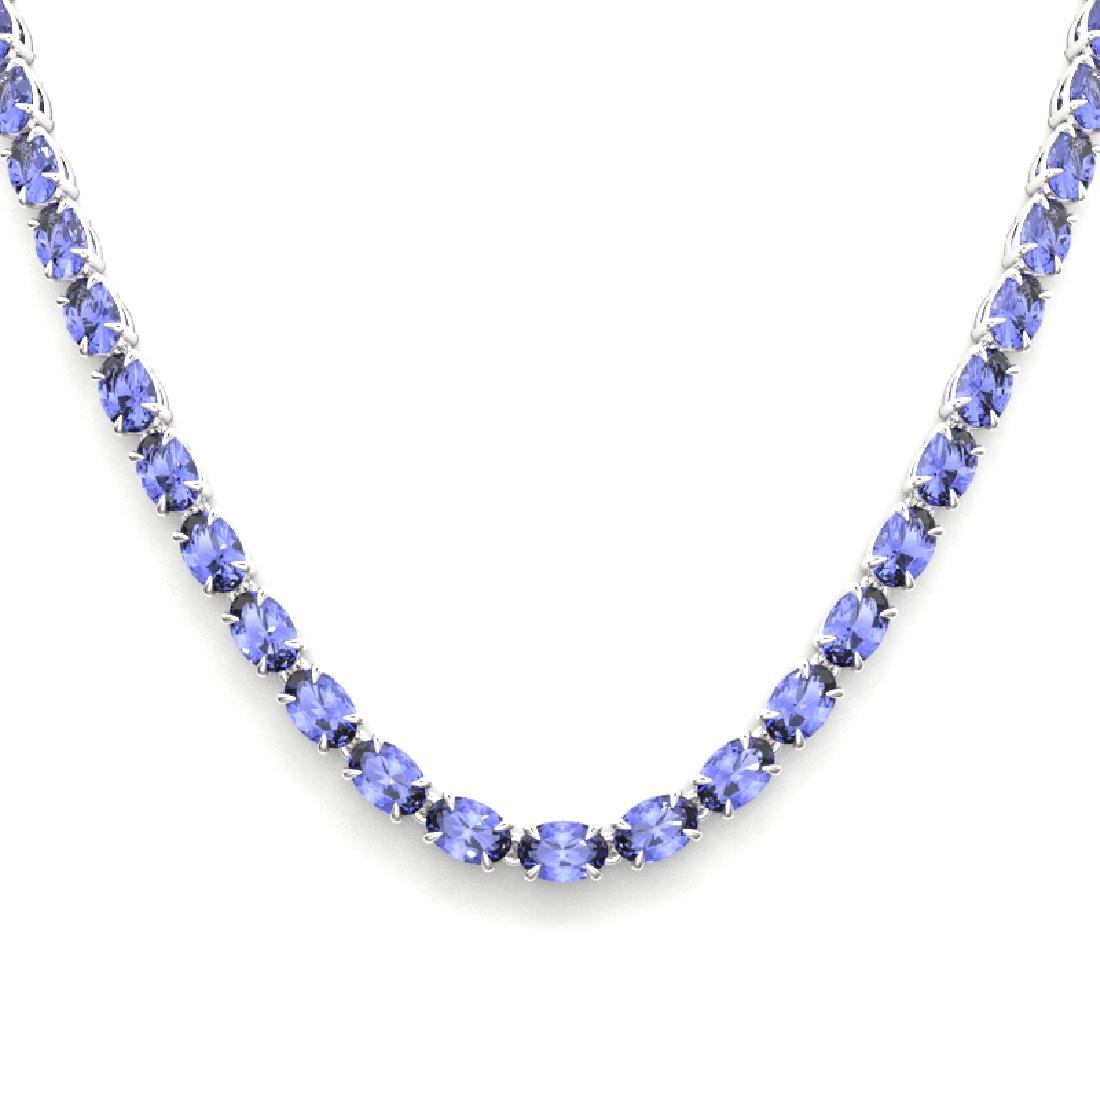 40 CTW Tanzanite Eternity Tennis Necklace 14K White - 2